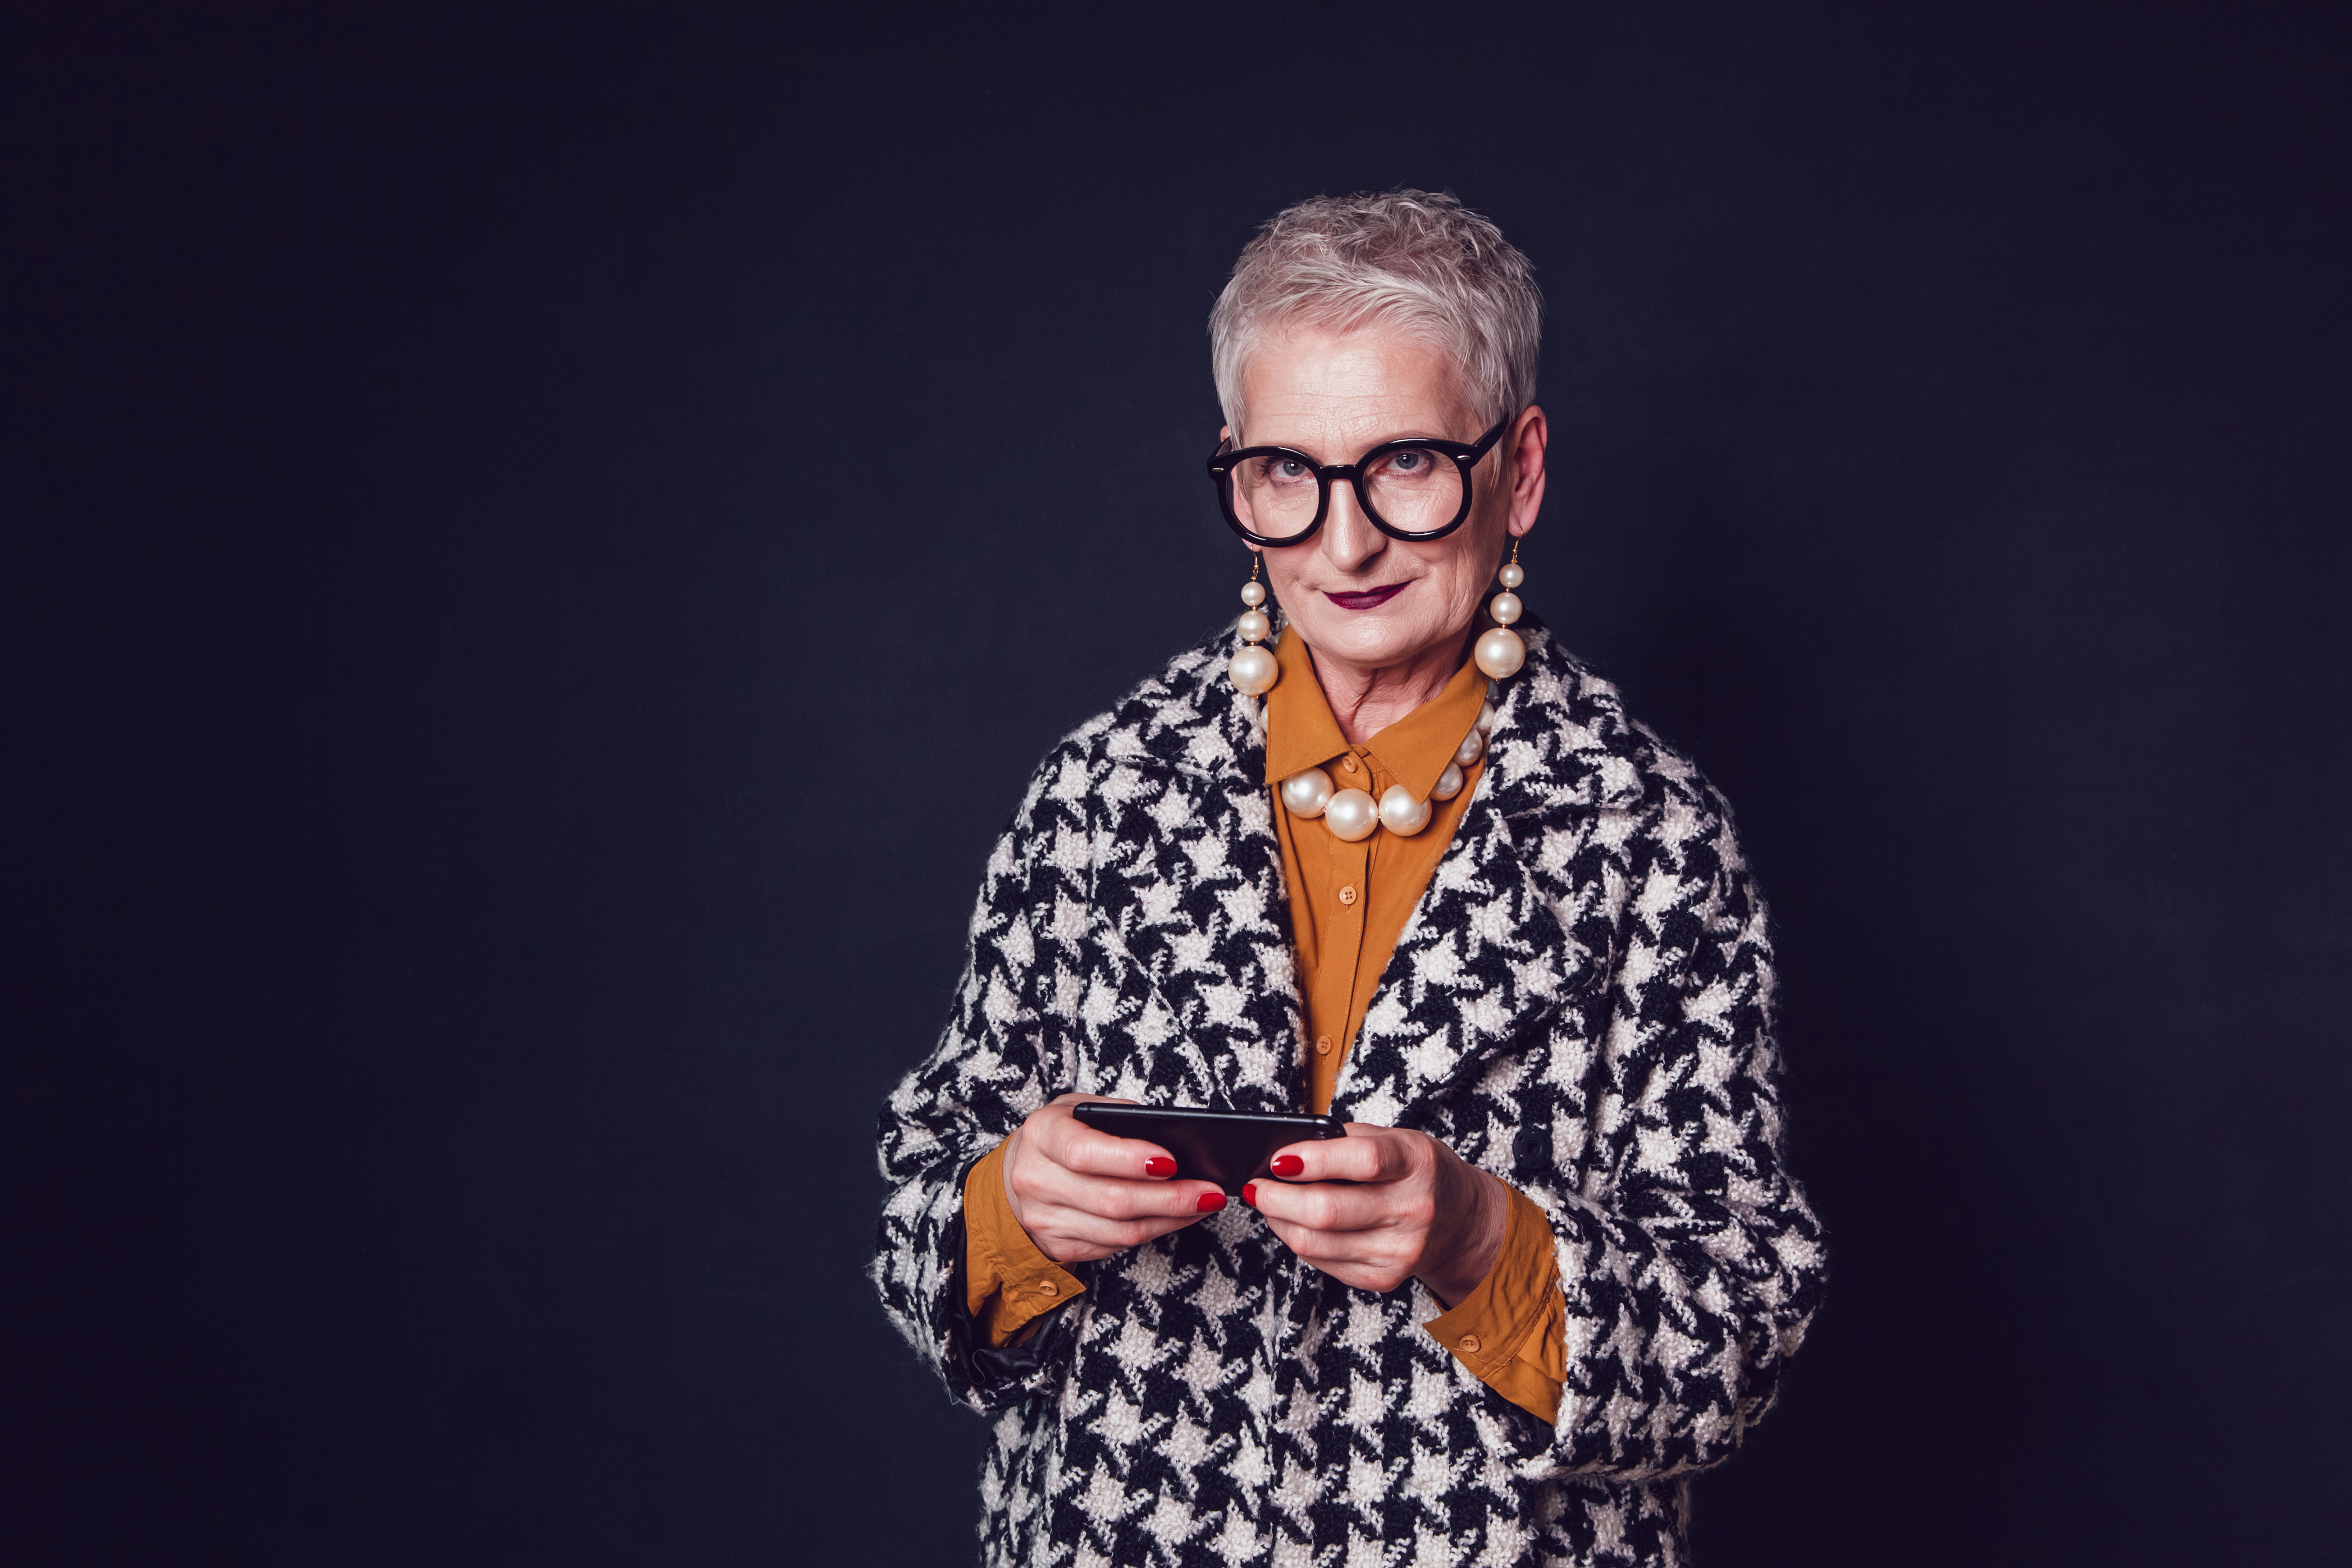 Stylish old woman in glasses using smartphone on a black background.